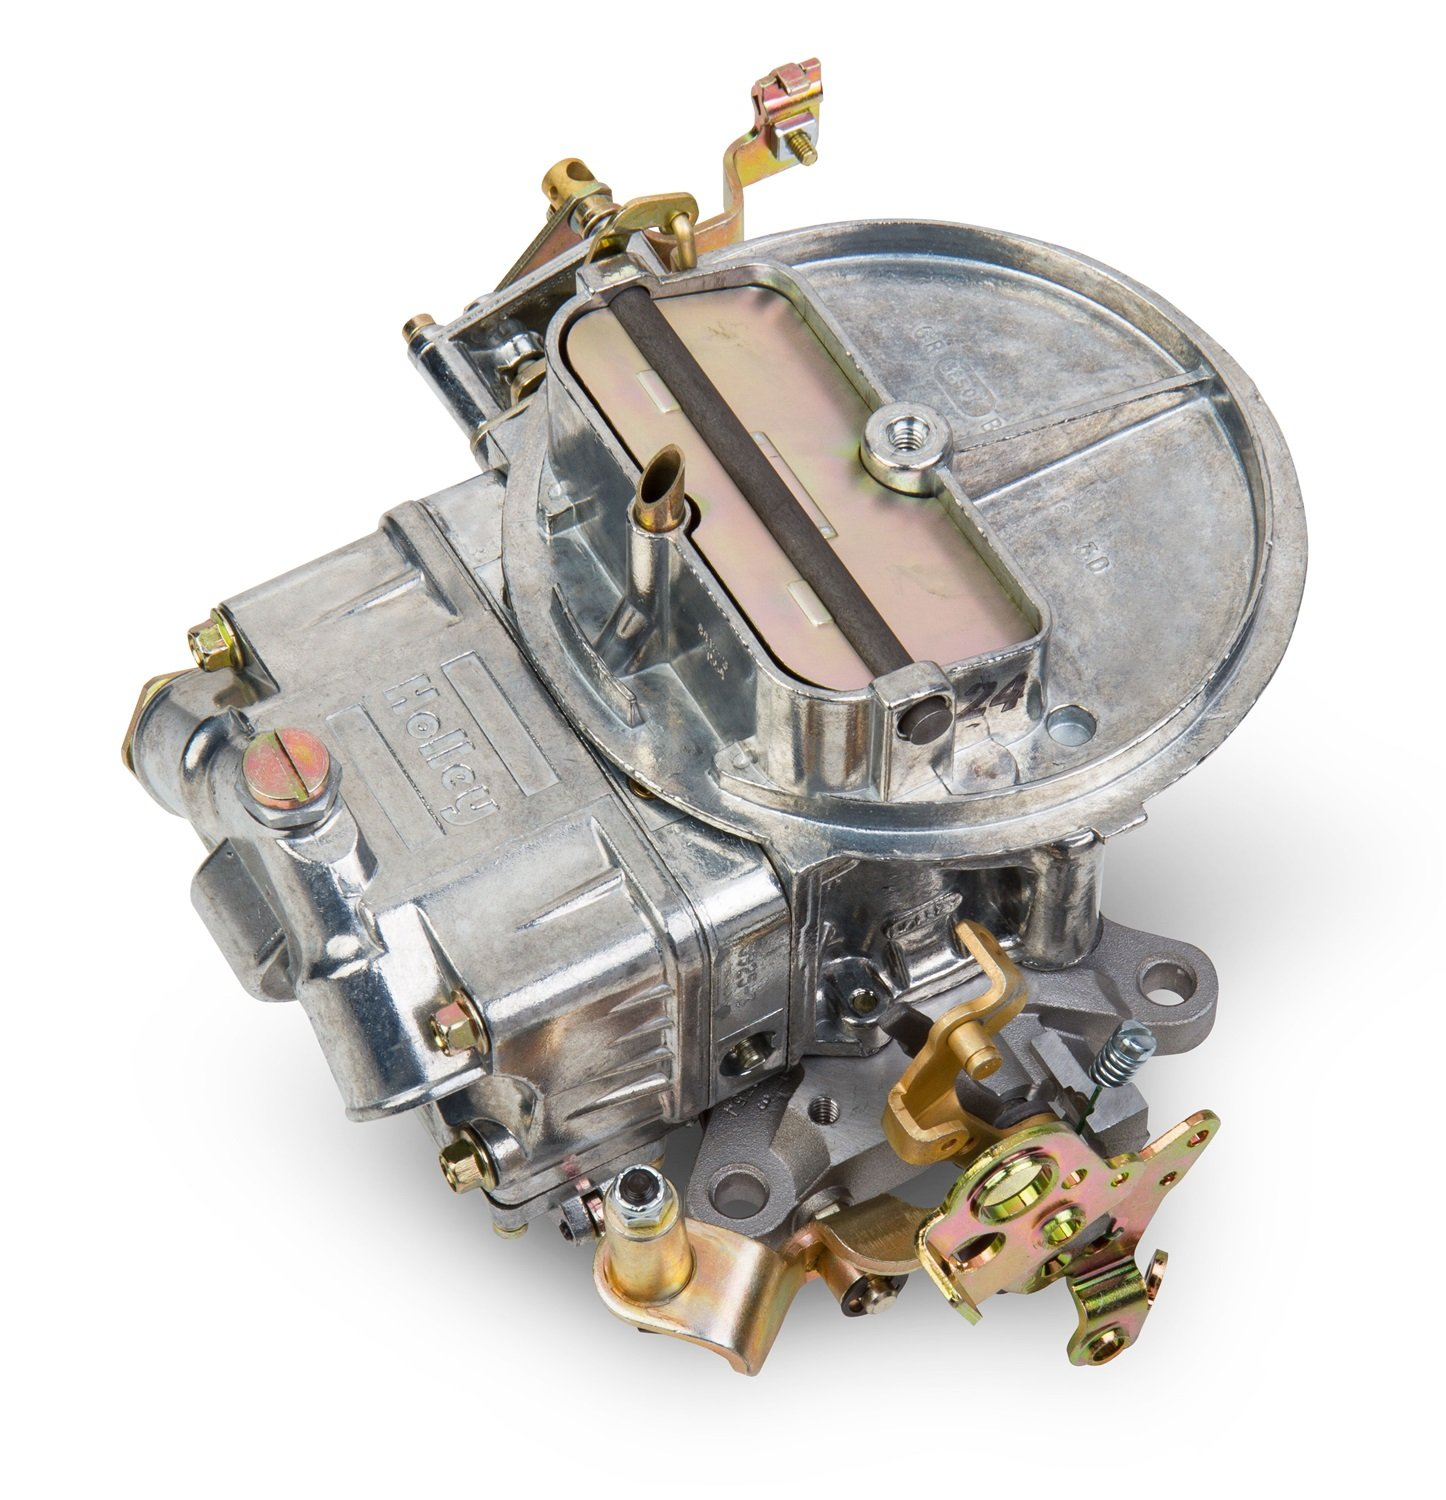 Holley 0-4412S Model 2300 500 CFM 2-Barrel Manual Choke New Carburetor by Holley